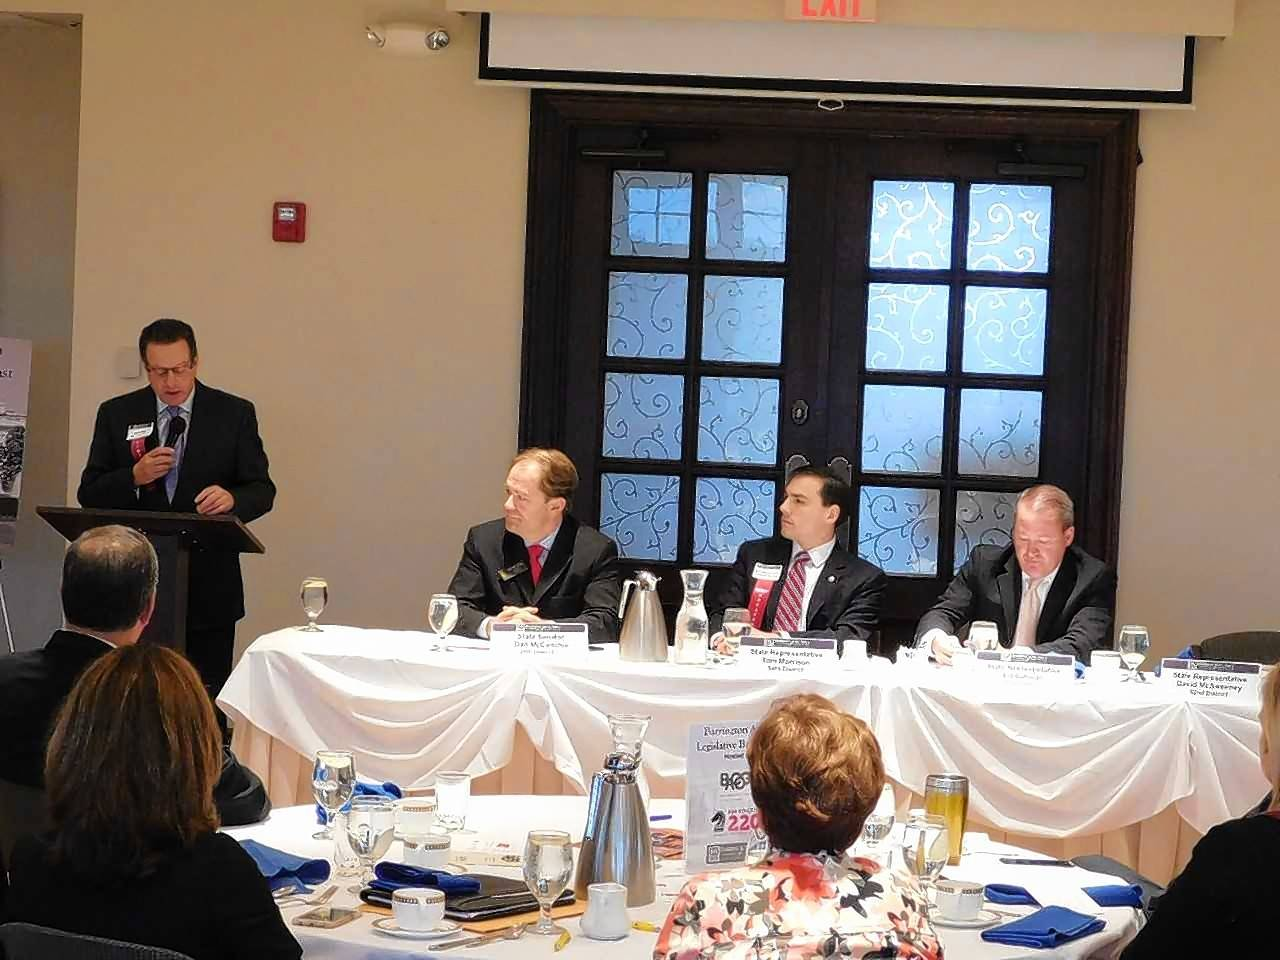 Guests listen to legislative leaders at last year's Barrington Area Chamber of Commerce Legislative Breakfast. This year's breakfast will be Wednesday, Oct. 4, at The Garlands of Barrington.